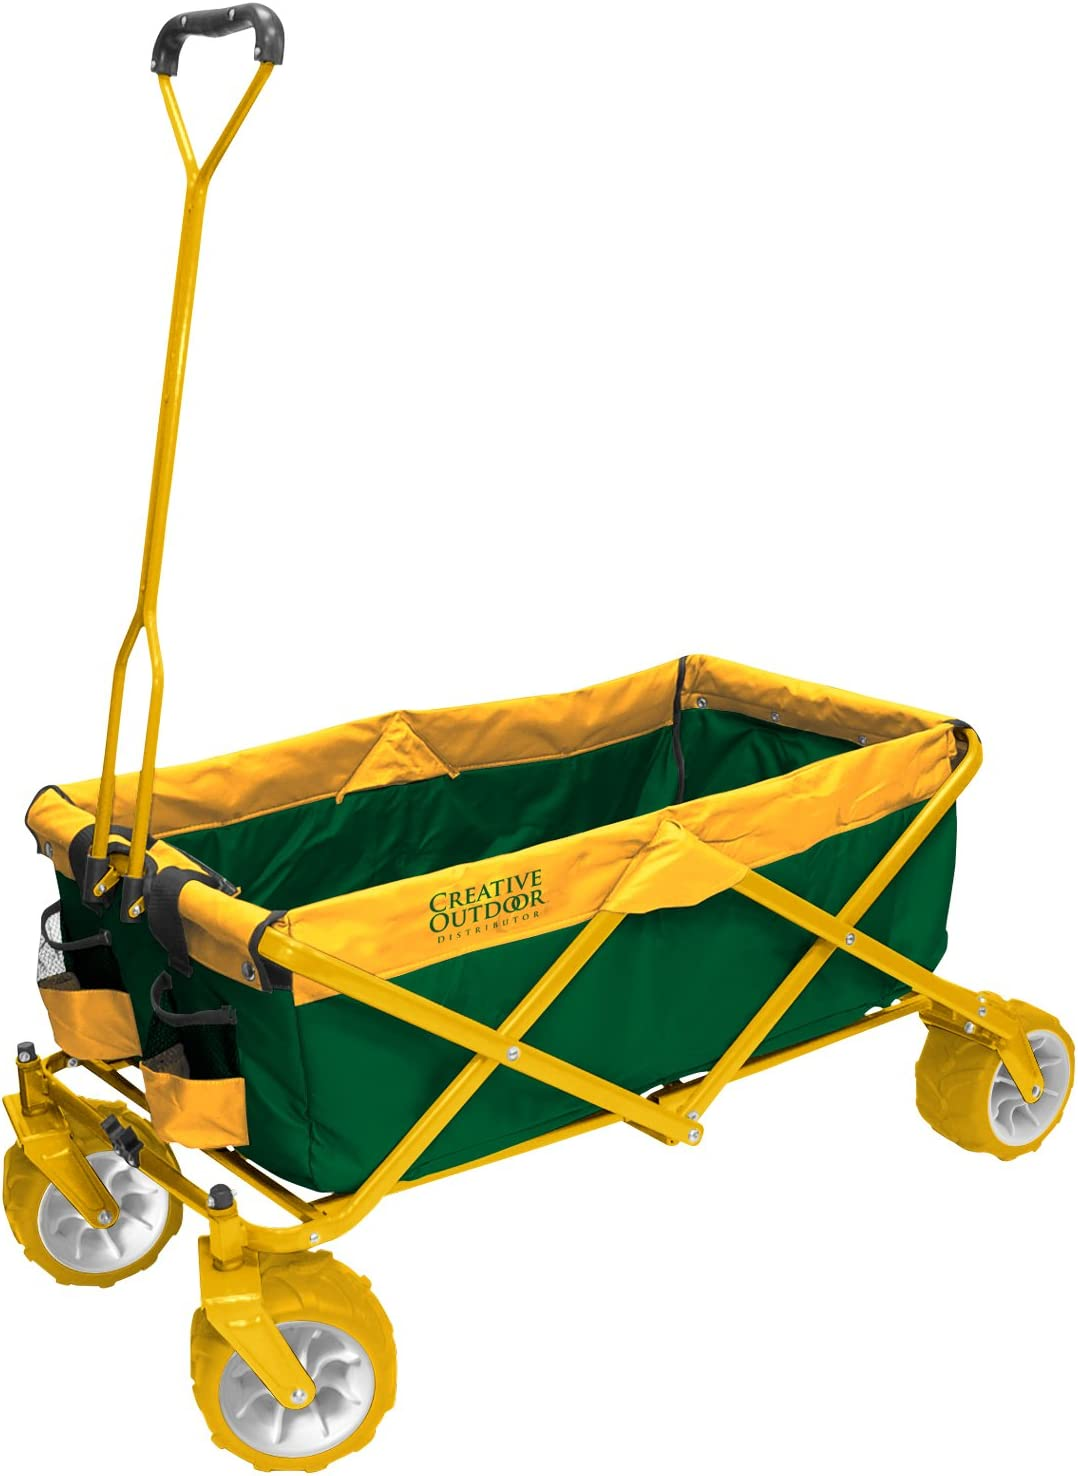 Creative Outdoor Collapsible Folding Wagon Cart for Kids and Pets | All Terrain | Beach Park Garden Sports & Camping | Green & Yellow